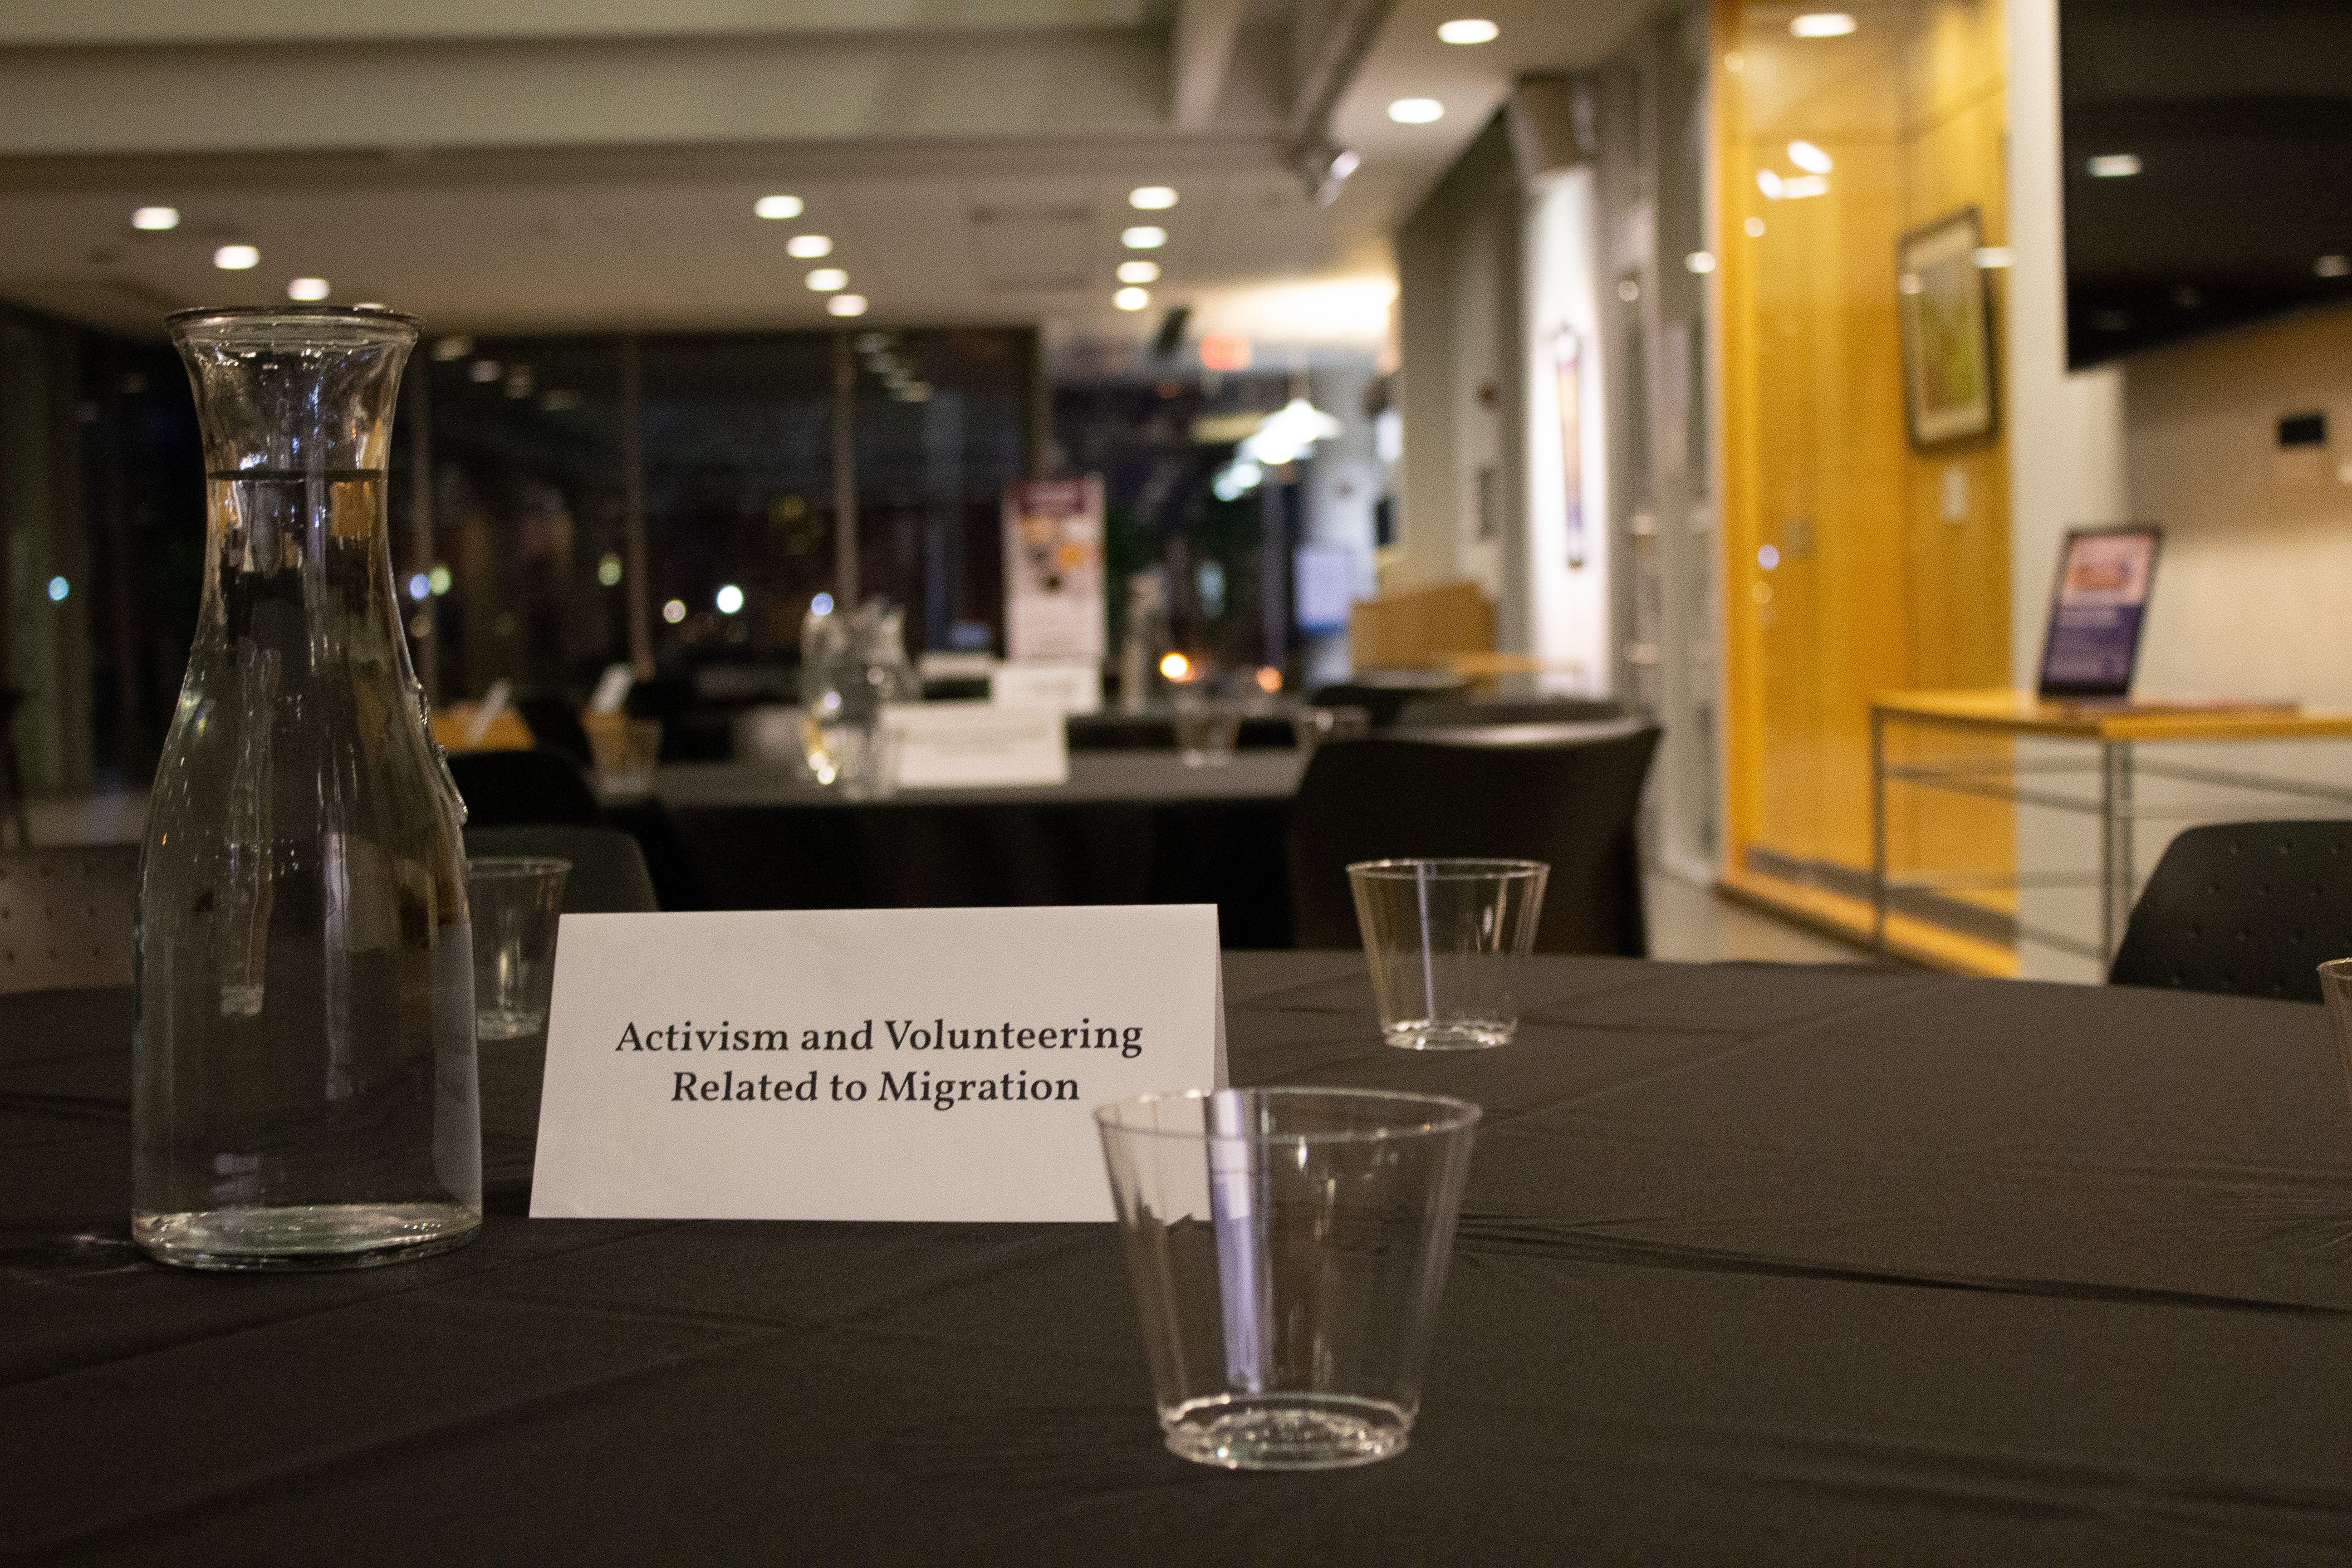 A round table with a sign that says activism and volunteering related to migration.